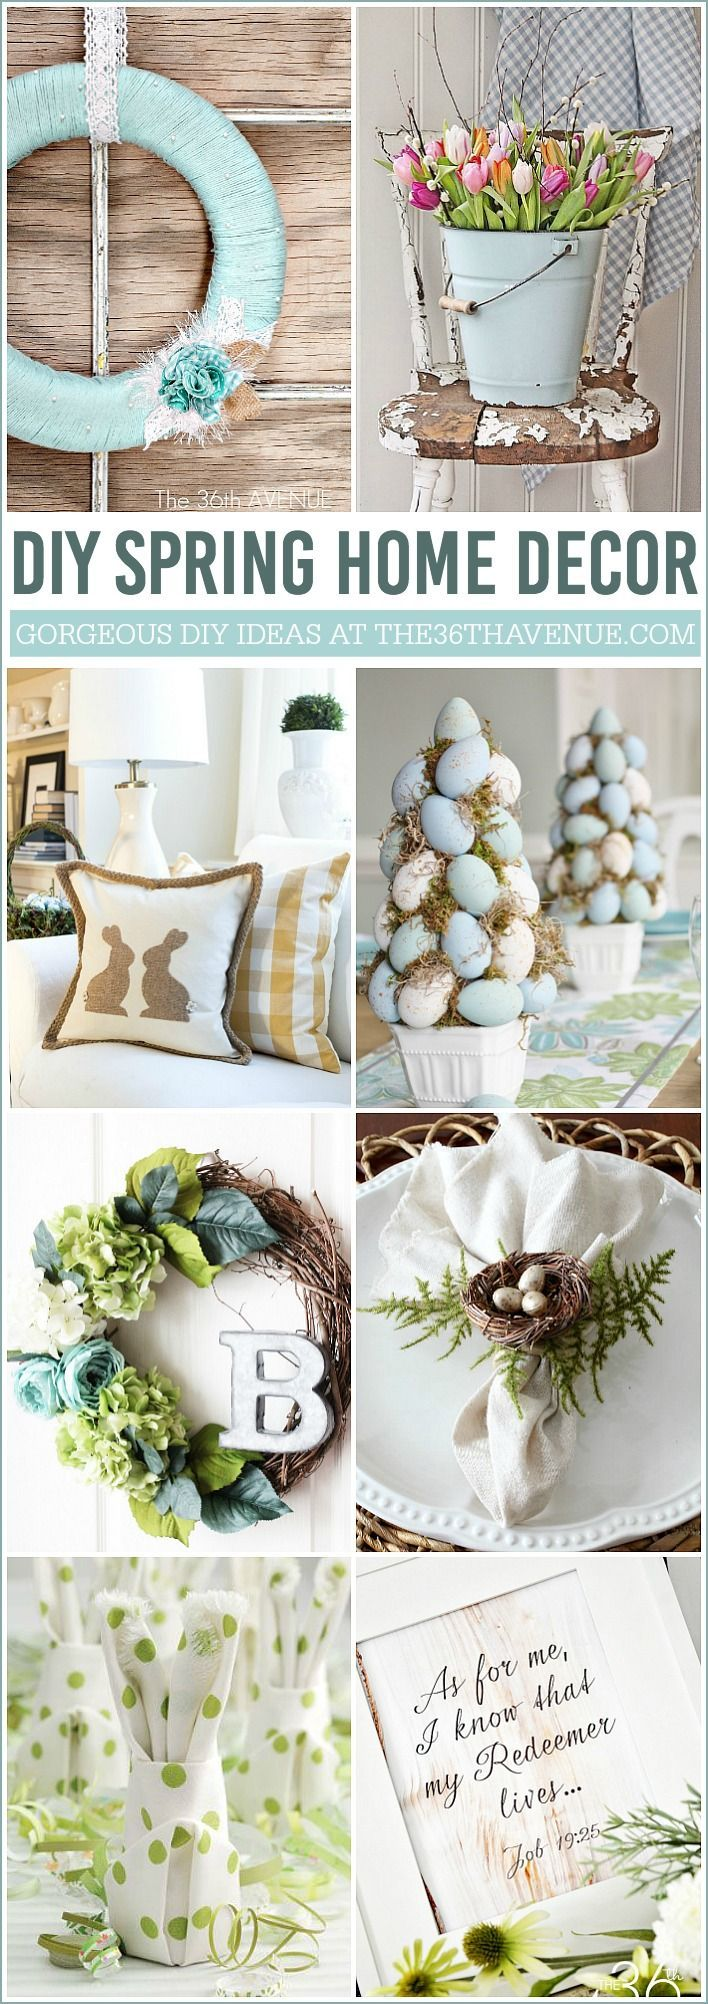 Home Ideas: Easter DIY Spring Home Decor - The 36th AVENUE